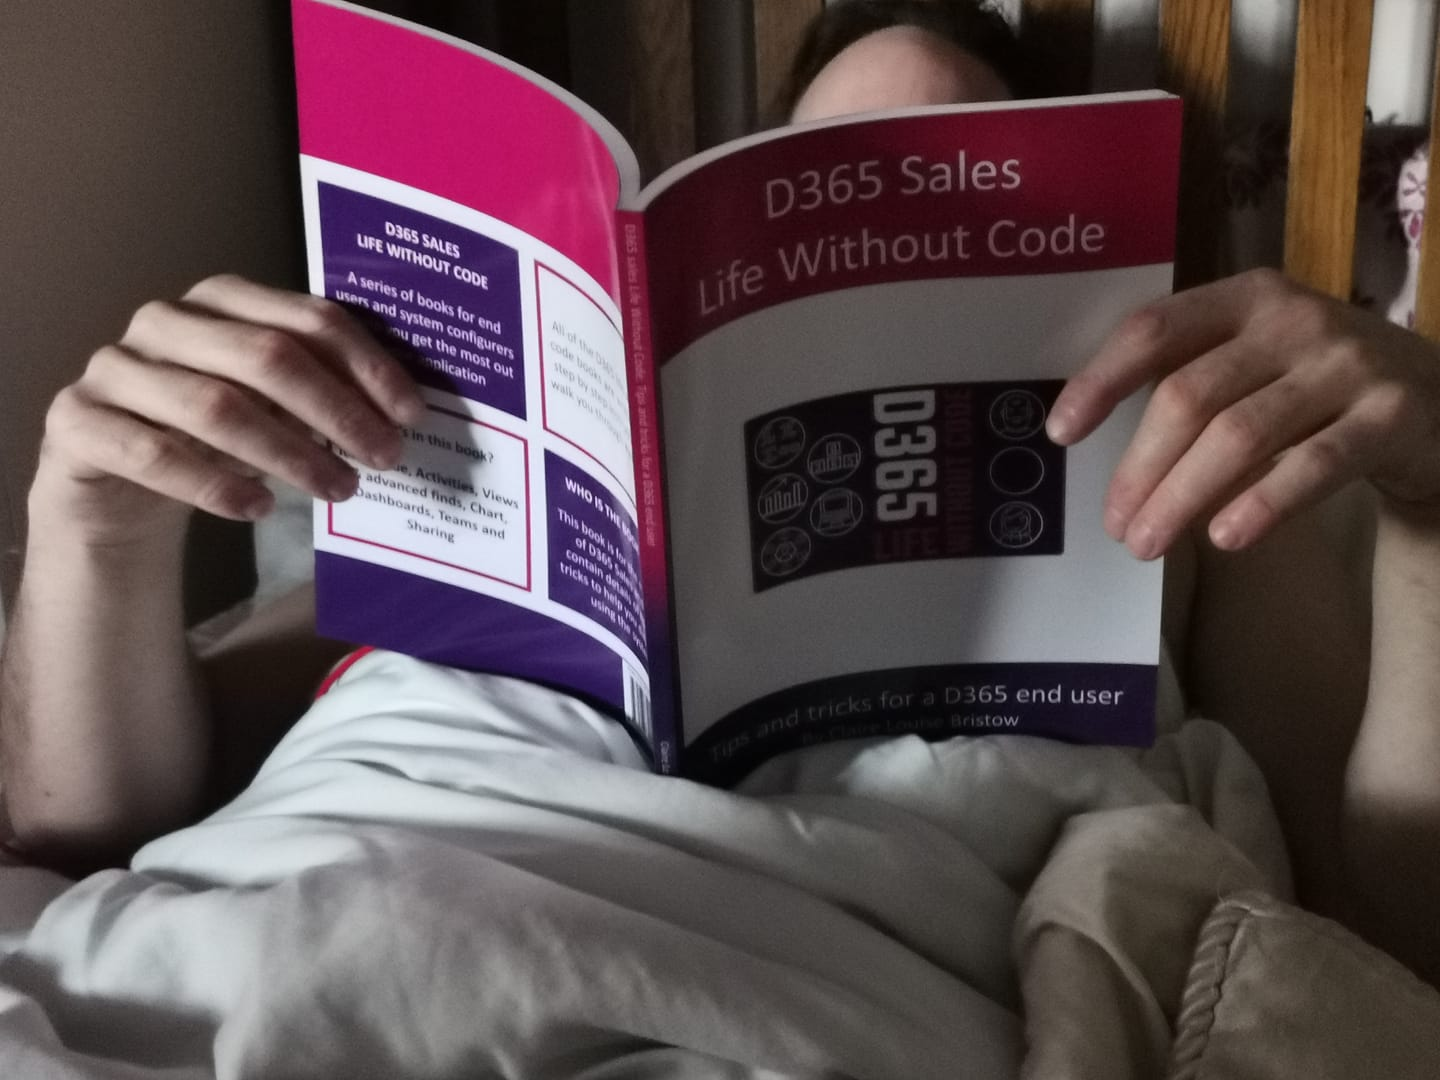 Tips and tricks for a D365 end user  The perfect bedtime read